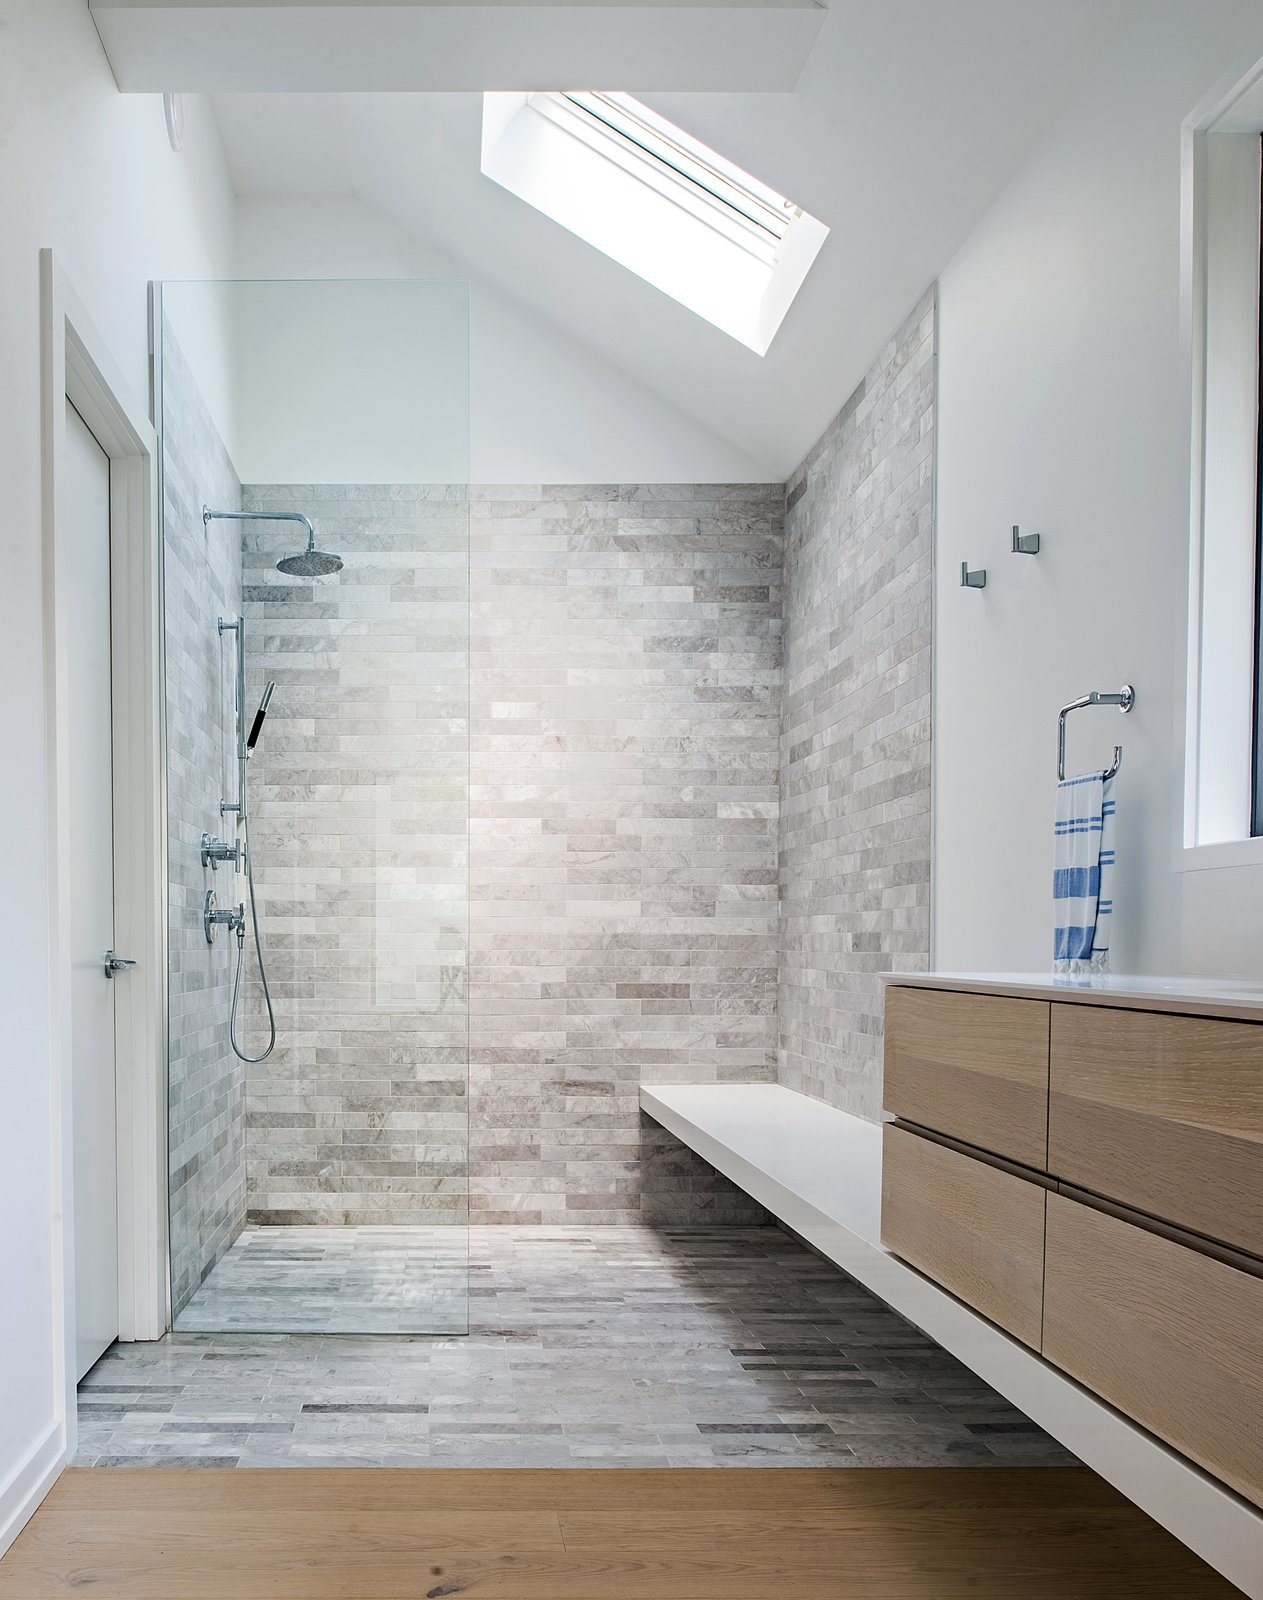 Tagged: Bath Room, Engineered Quartz Counter, Light Hardwood Floor, Freestanding Tub, Undermount Sink, Open Shower, Ceiling Lighting, and Stone Tile Wall.  Richview Residence by StudioAC